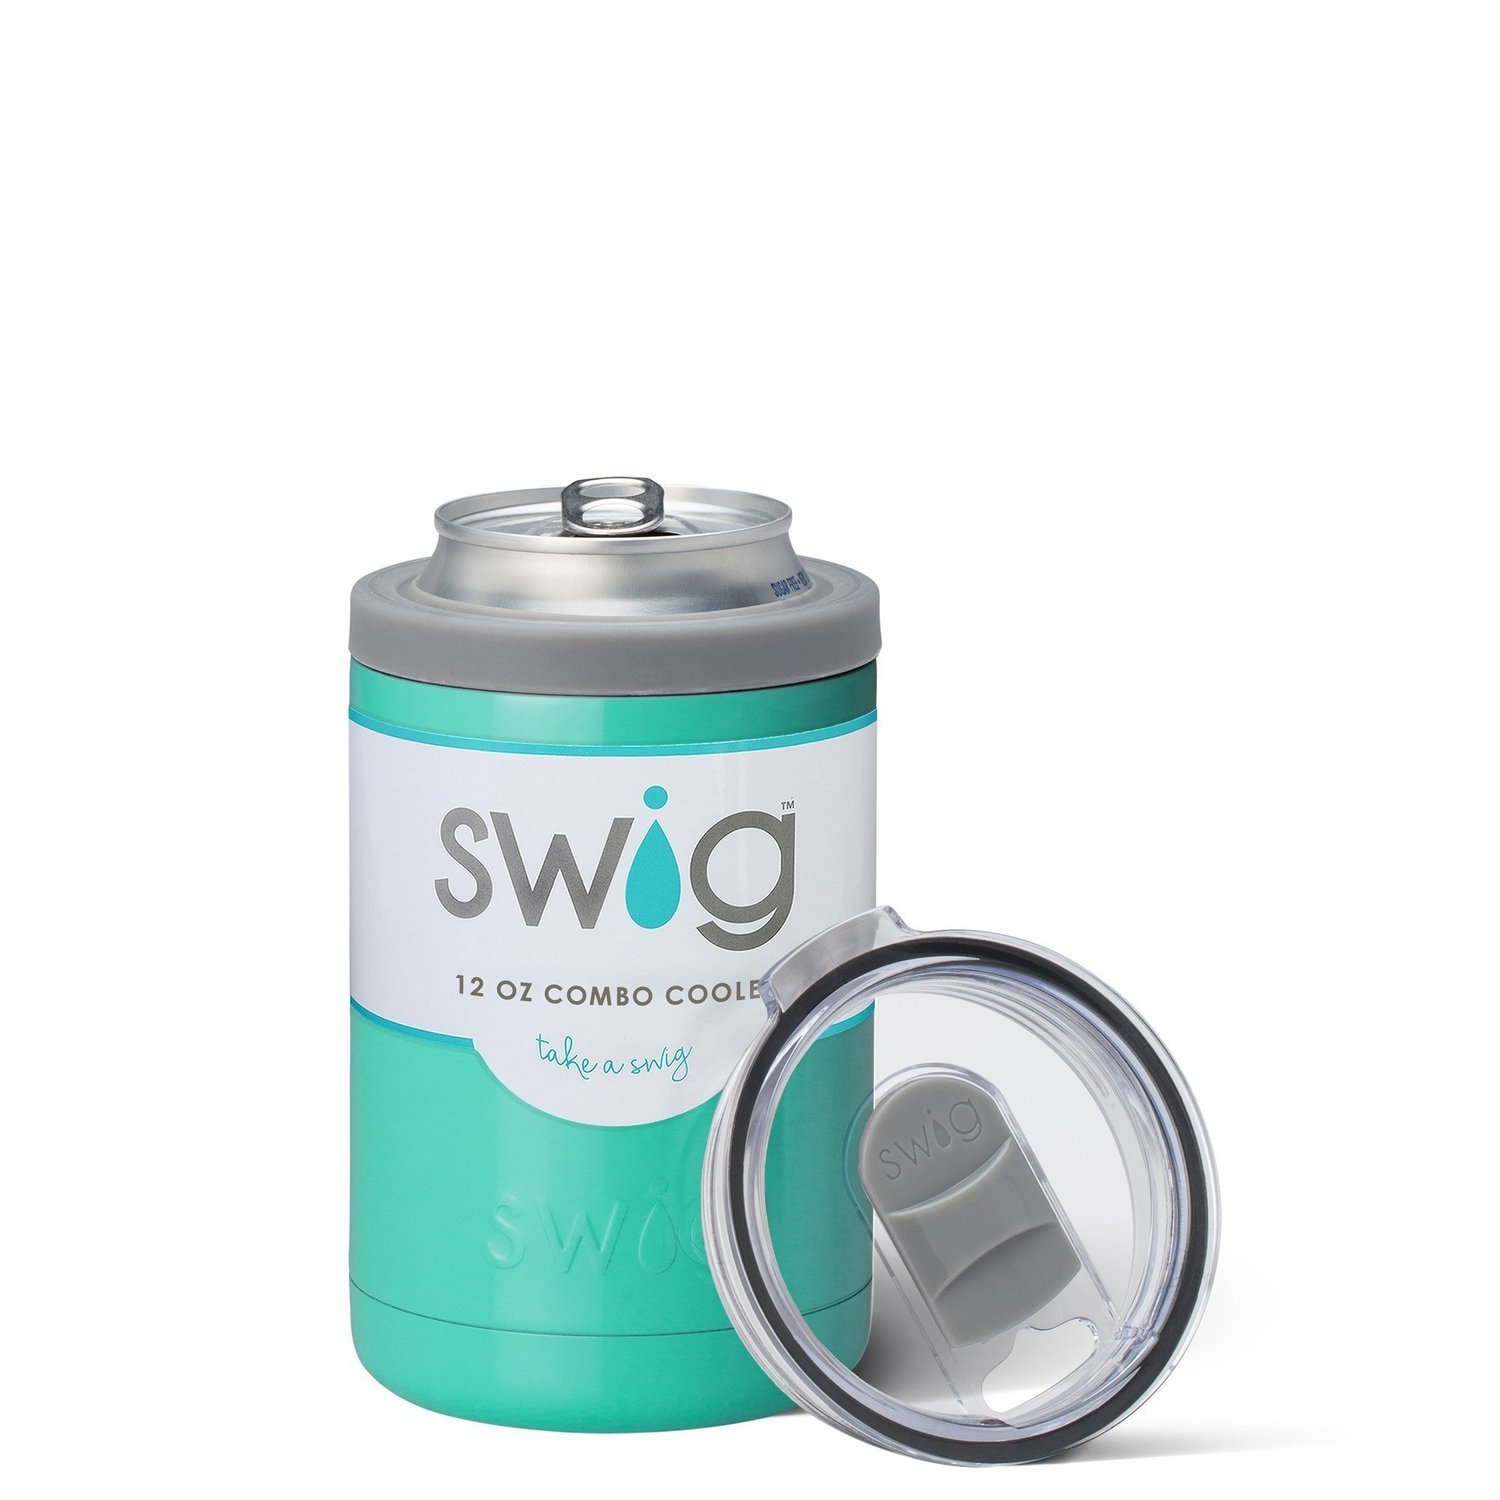 Turquoise 12oz Combo Cooler